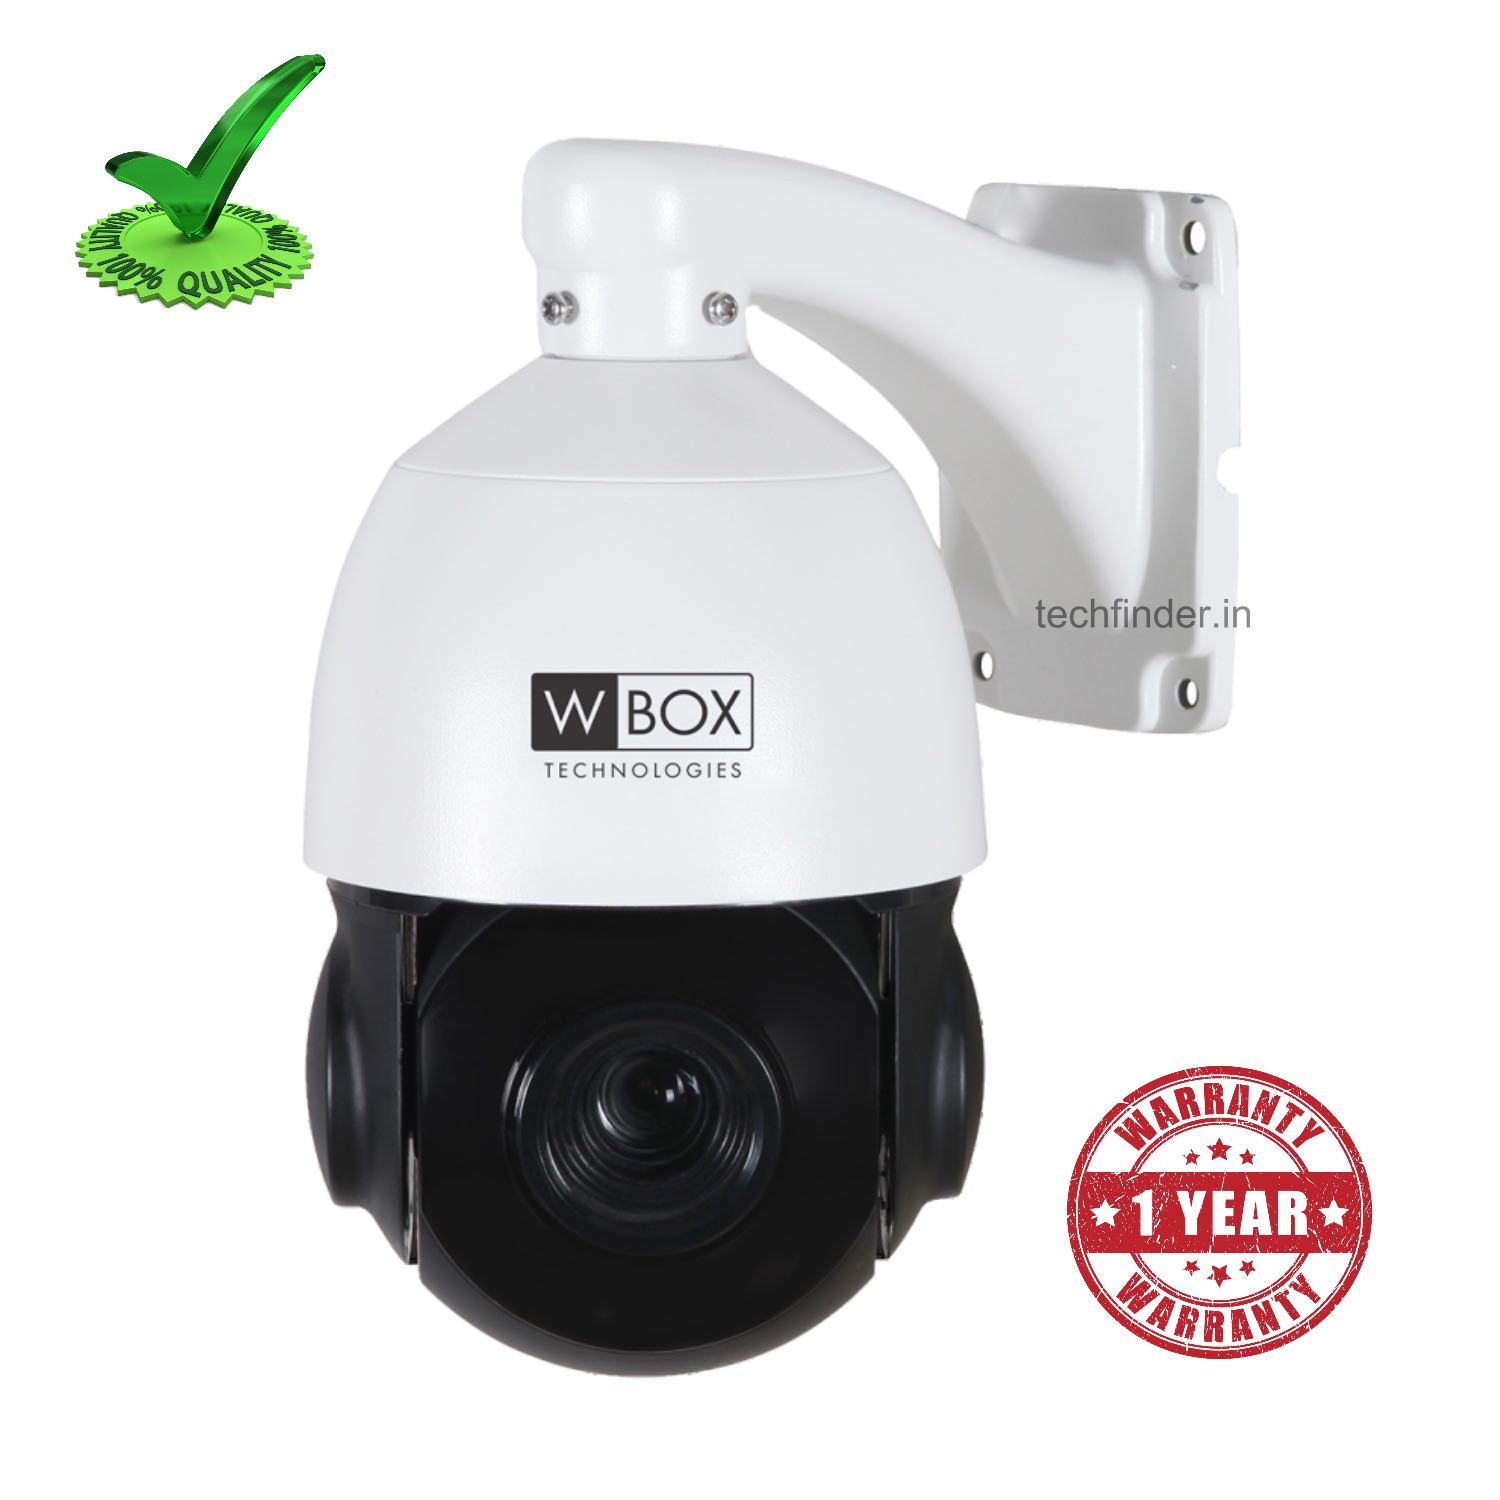 W Box WBC0E-CLISD2R6022 PTZ 22x 2MP IP IR outdoor Speed Dome Camera